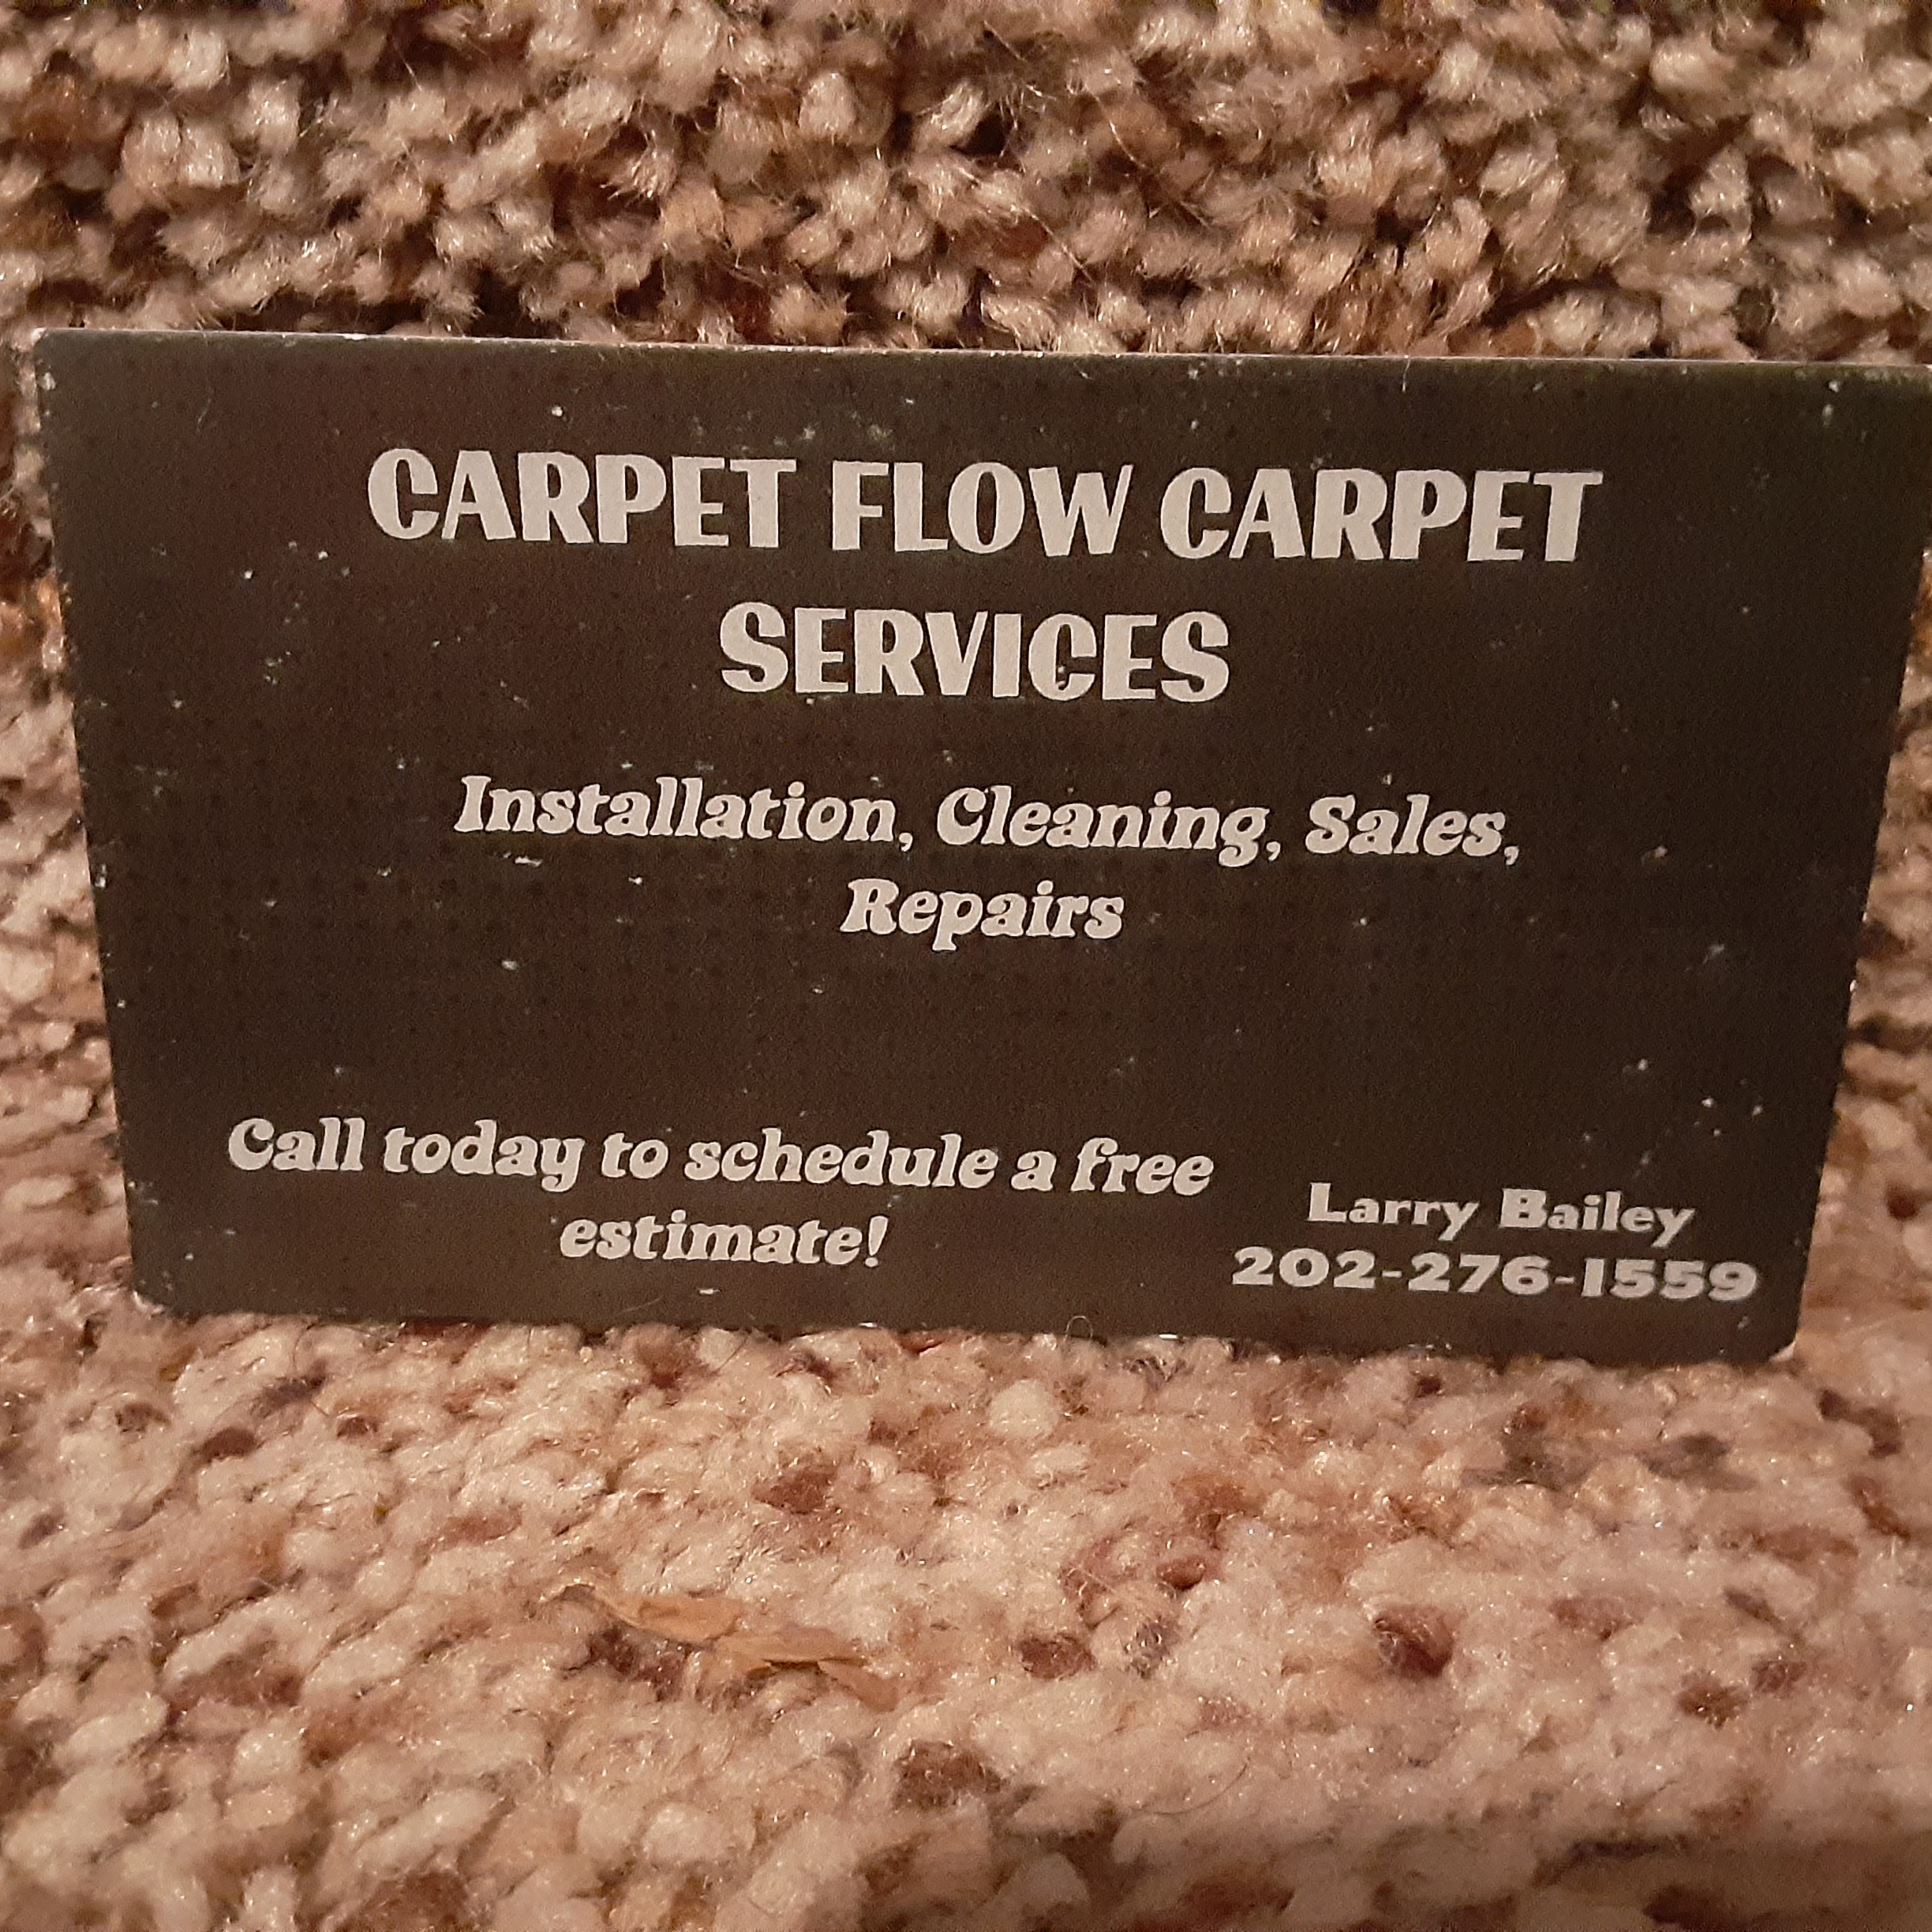 Carpet Flow Flooring services